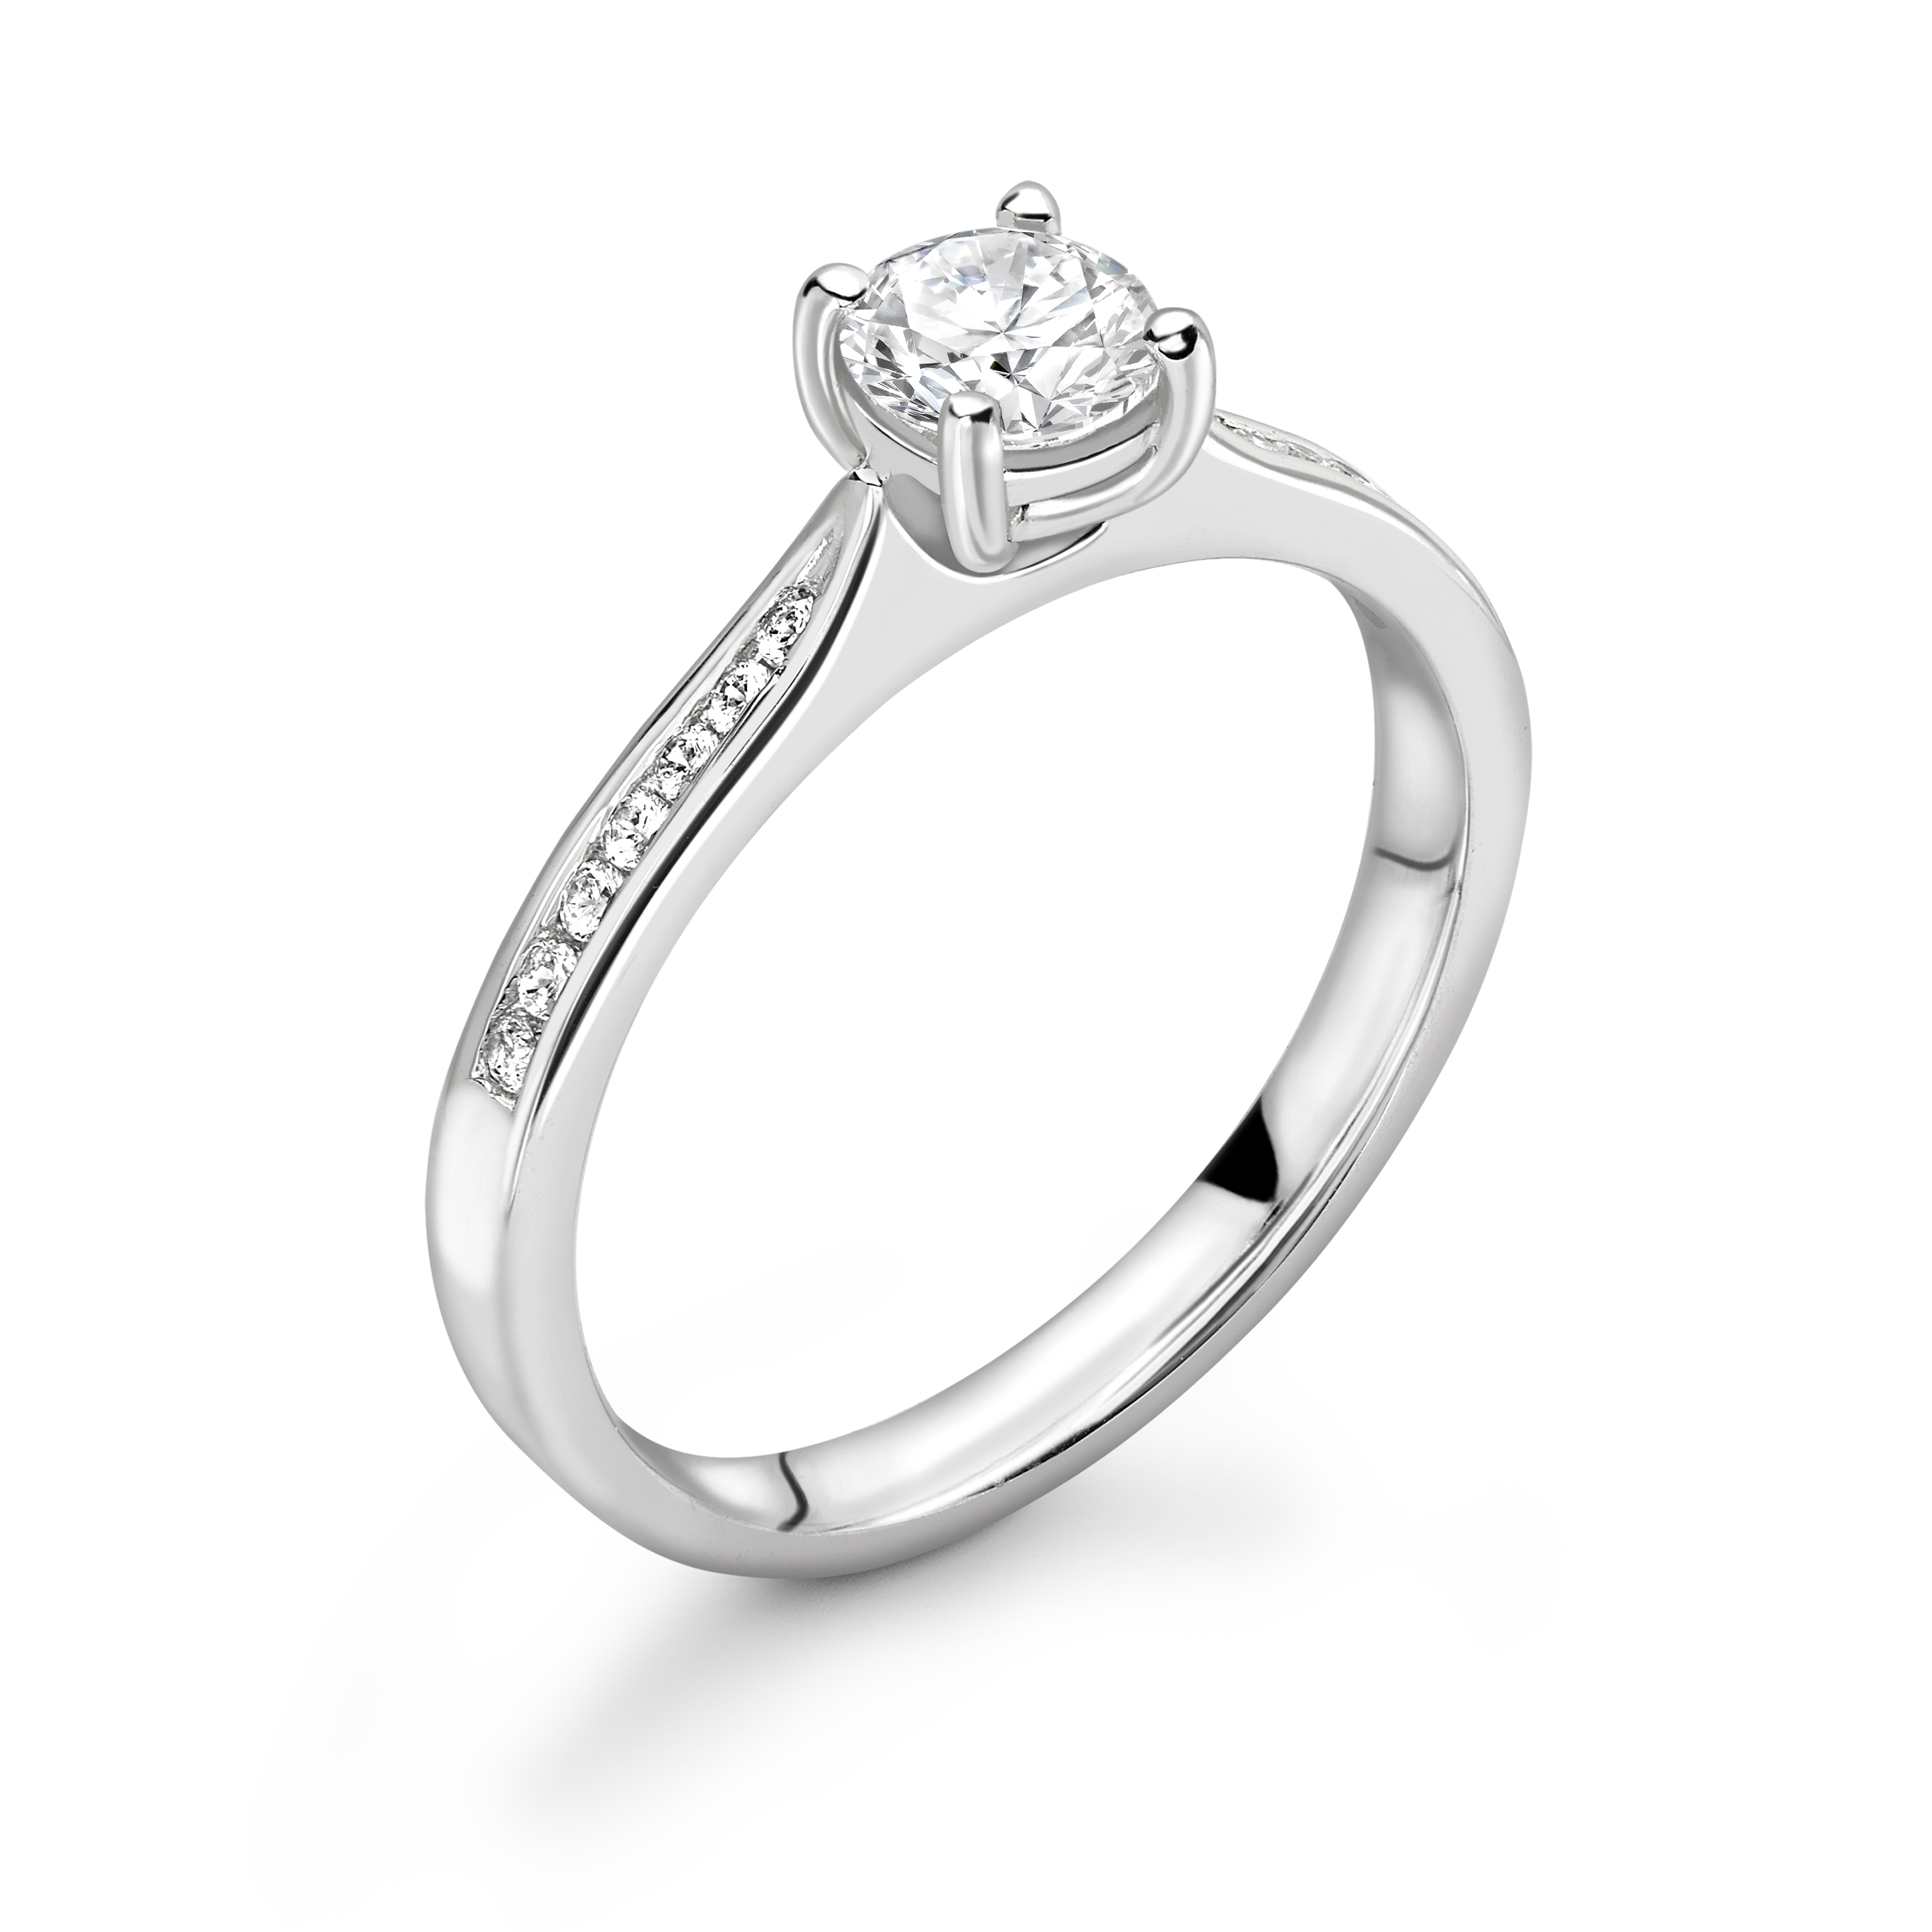 4 Claw Channel Setting Tapering Shoulder Engagement Ring